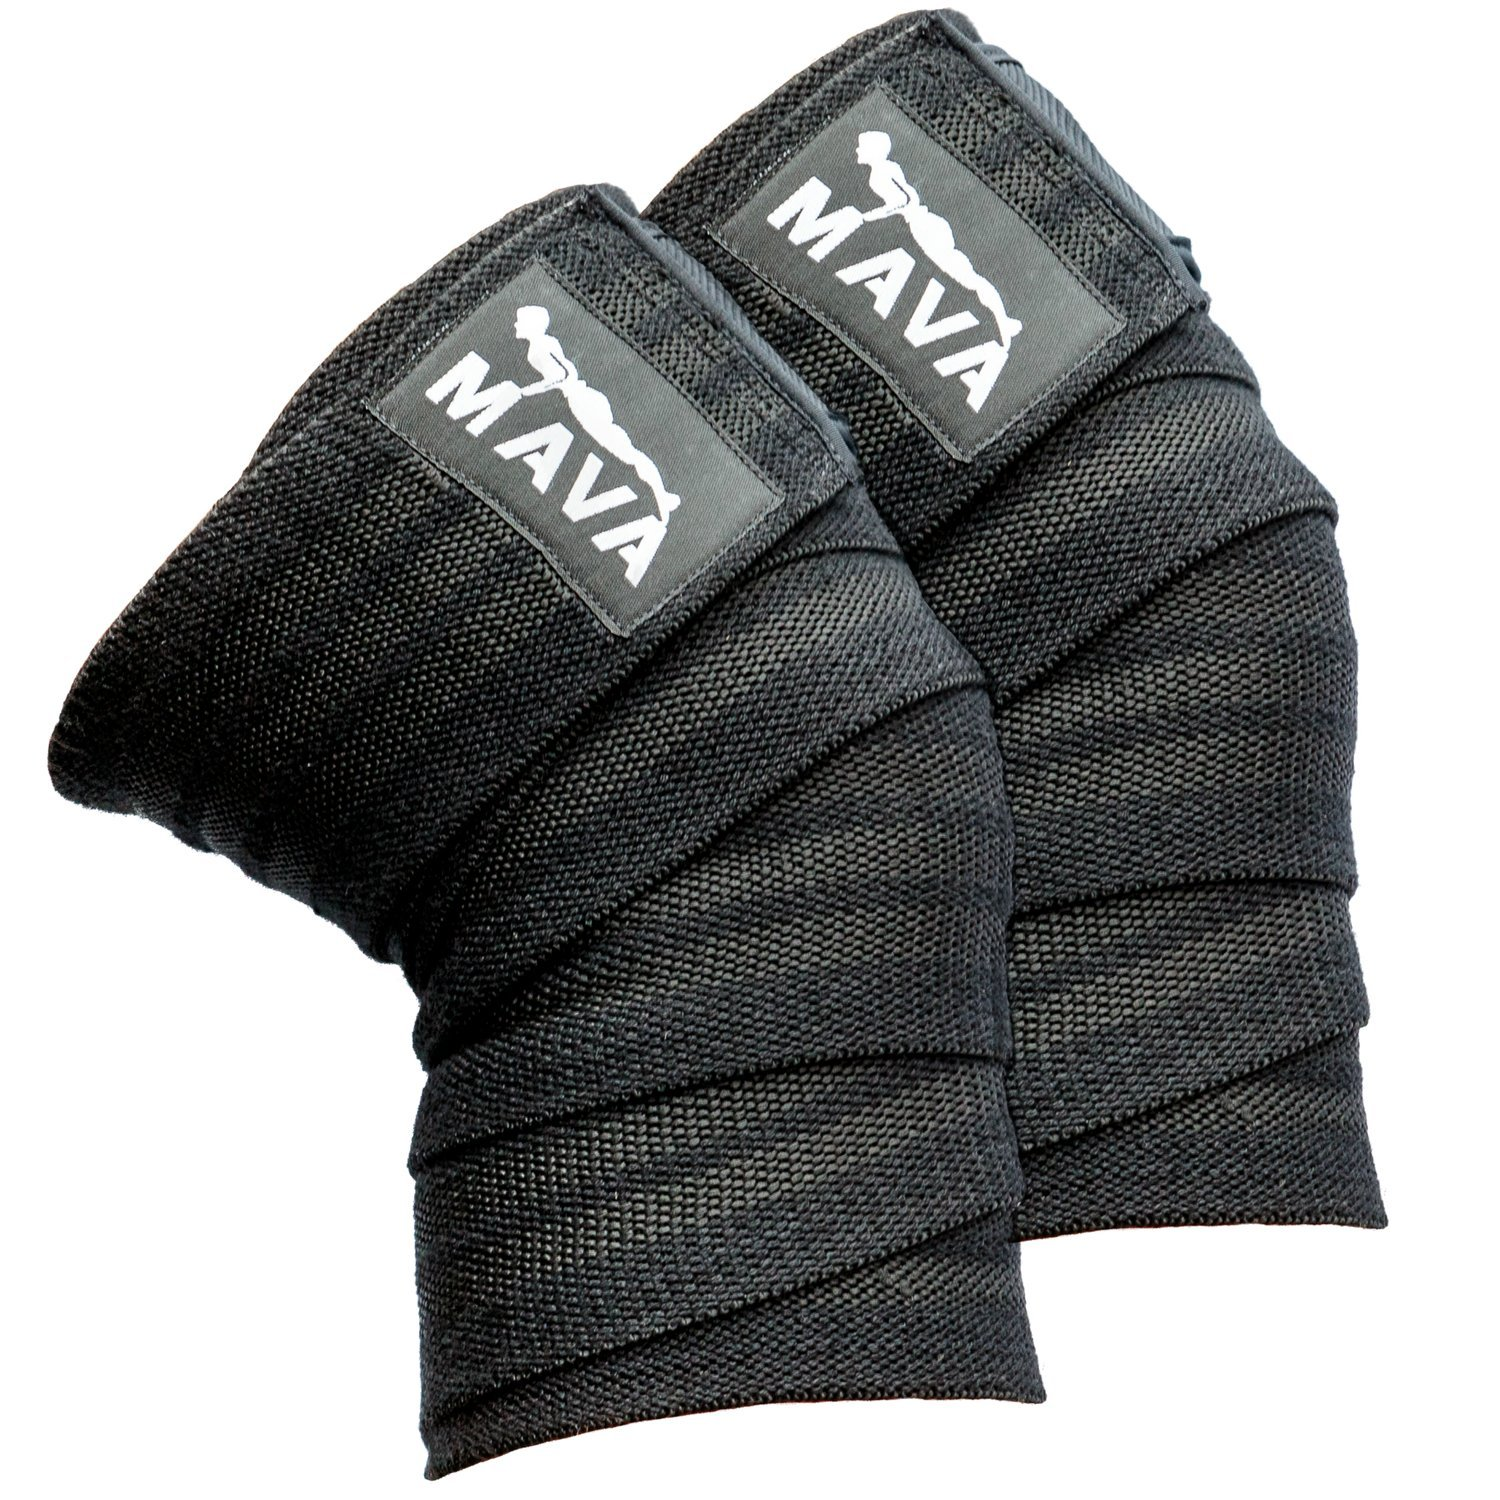 Mava Sports Knee Wraps (Pair) for Cross Training WODs